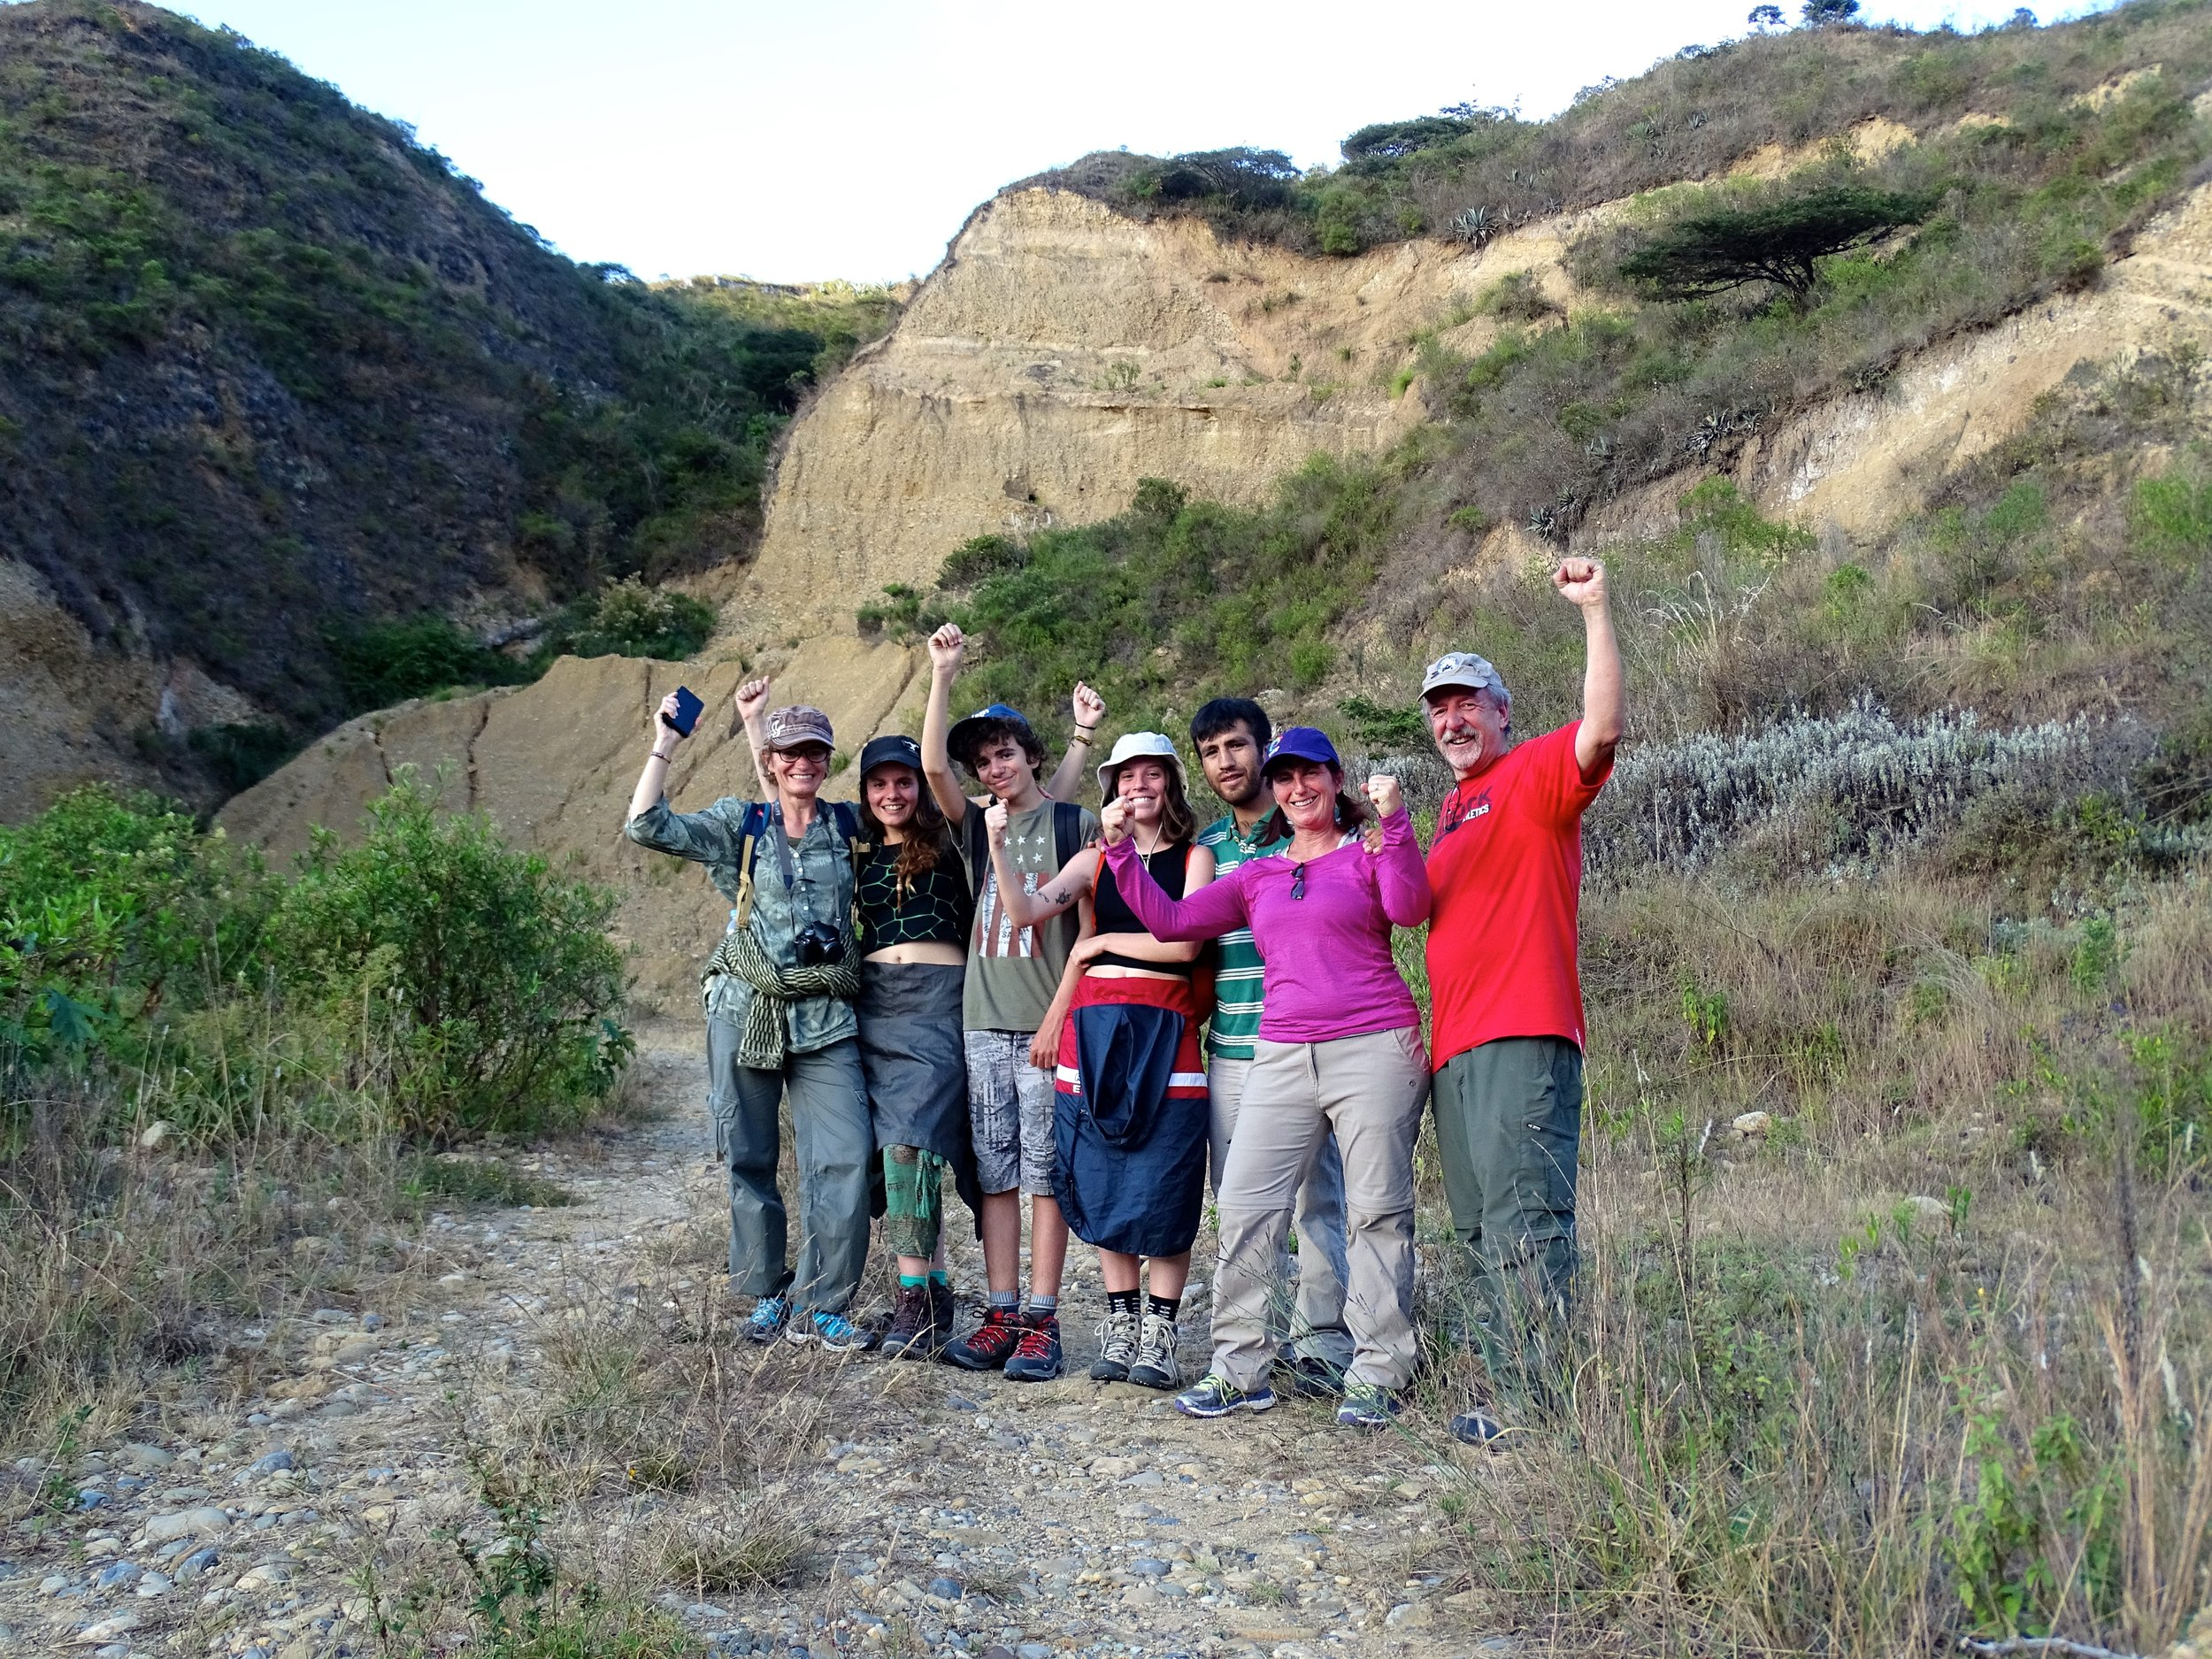 The gang after emerging out of the canyon that day.